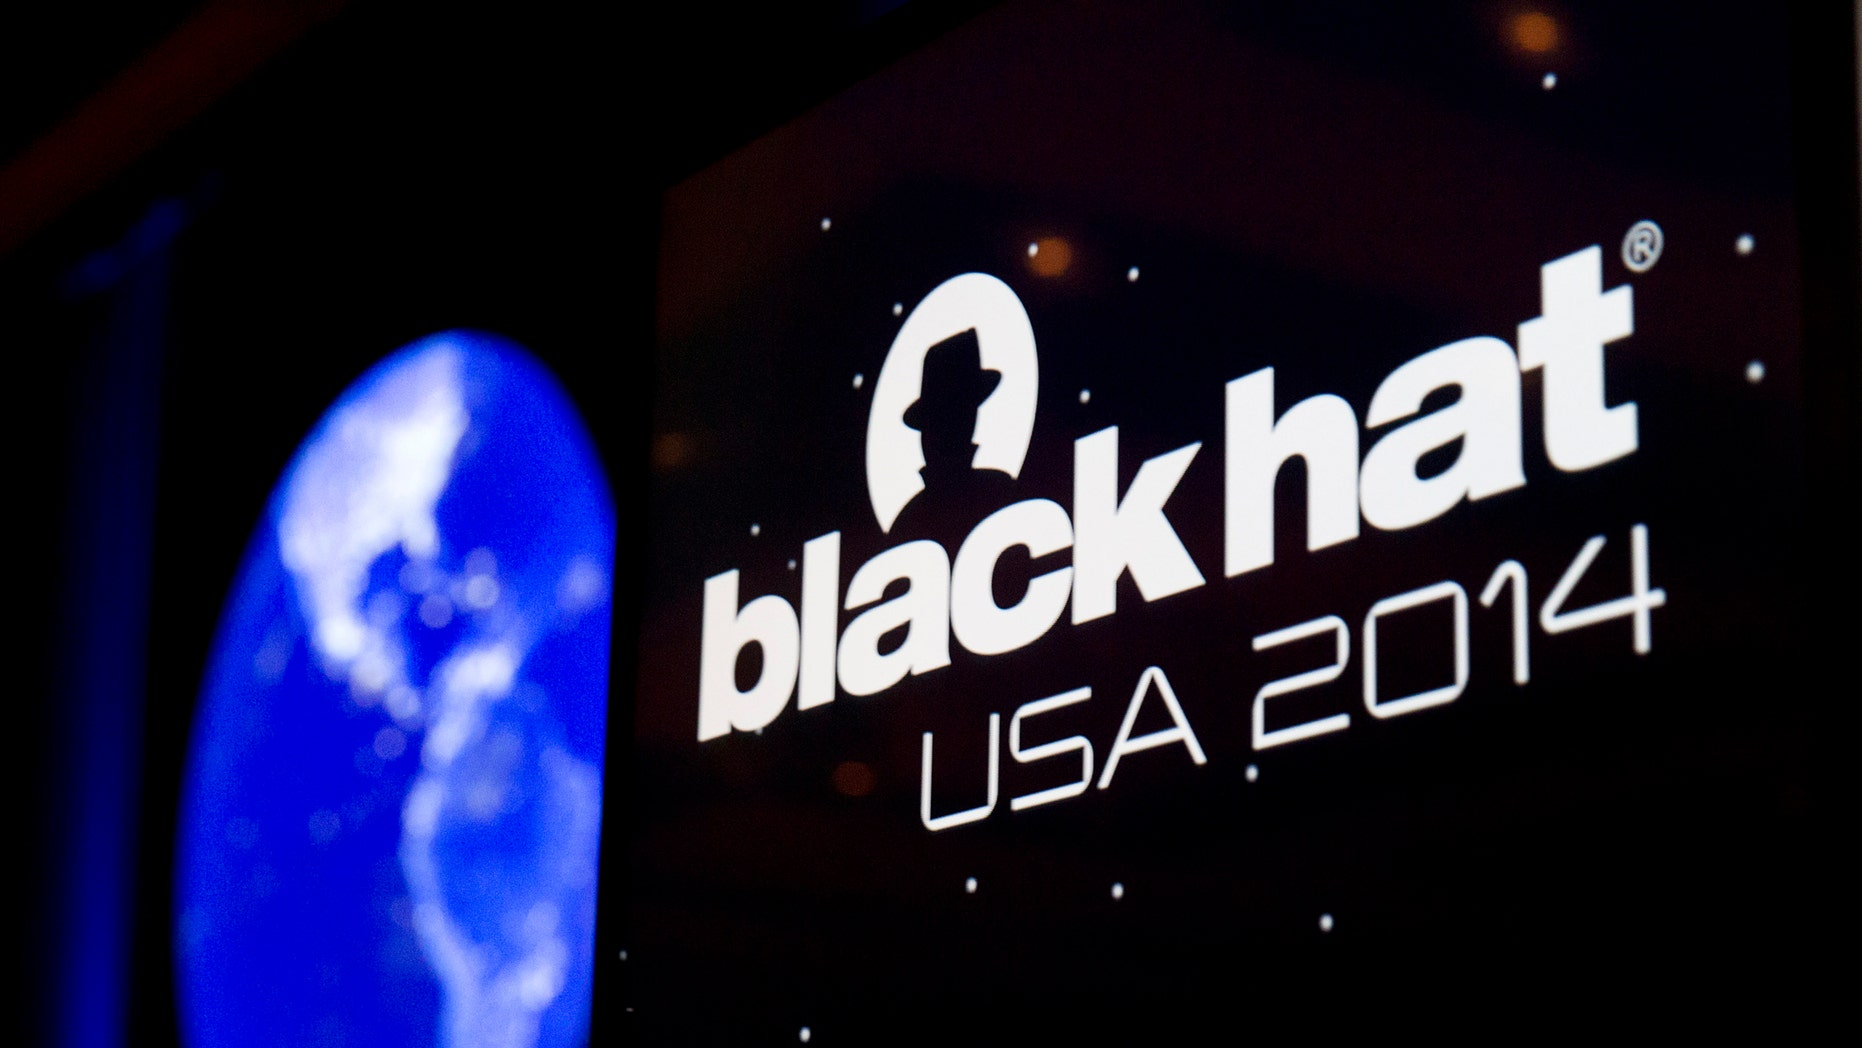 The Black Hat logo is shown on a podium during the Black Hat USA 2014 hacker conference at the Mandalay Bay Convention Center in Las Vegas, Nevada August 6, 2014. REUTERS/Steve Marcus (UNITED STATES - Tags: SCIENCE TECHNOLOGY) - RTR41H30